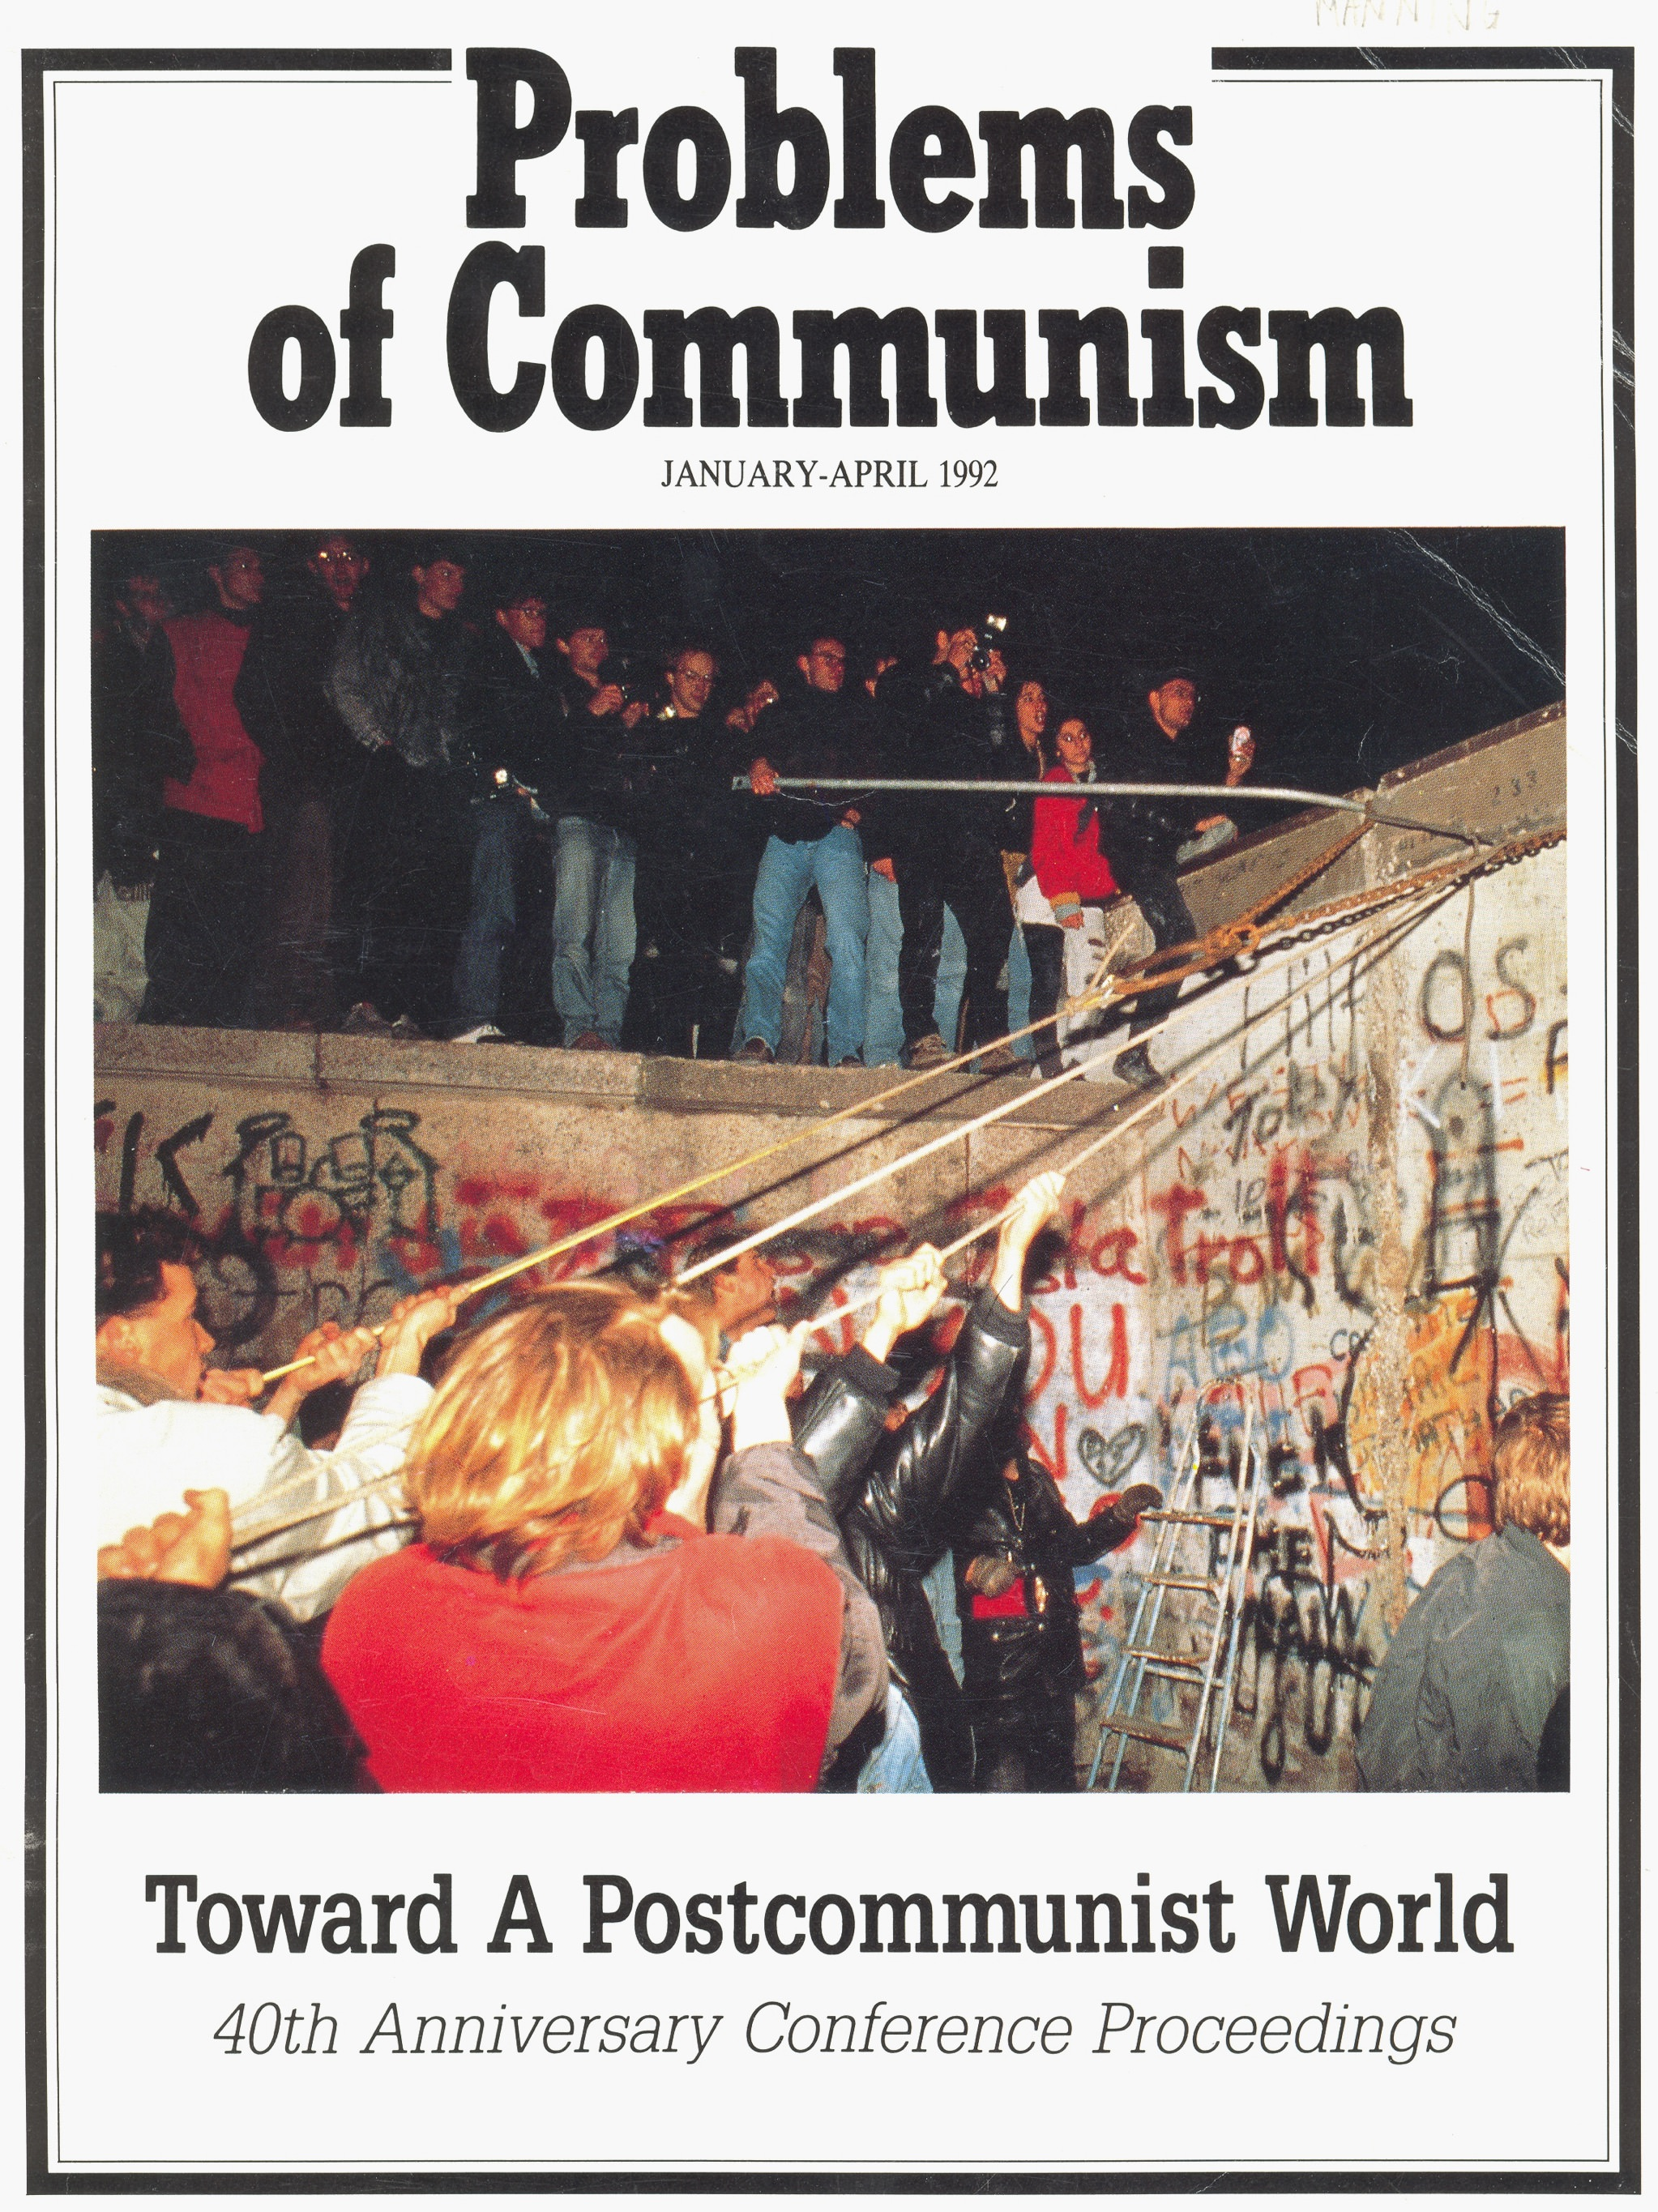 The U.S. Information Agency published Problems of Communism, a bimonthly journal